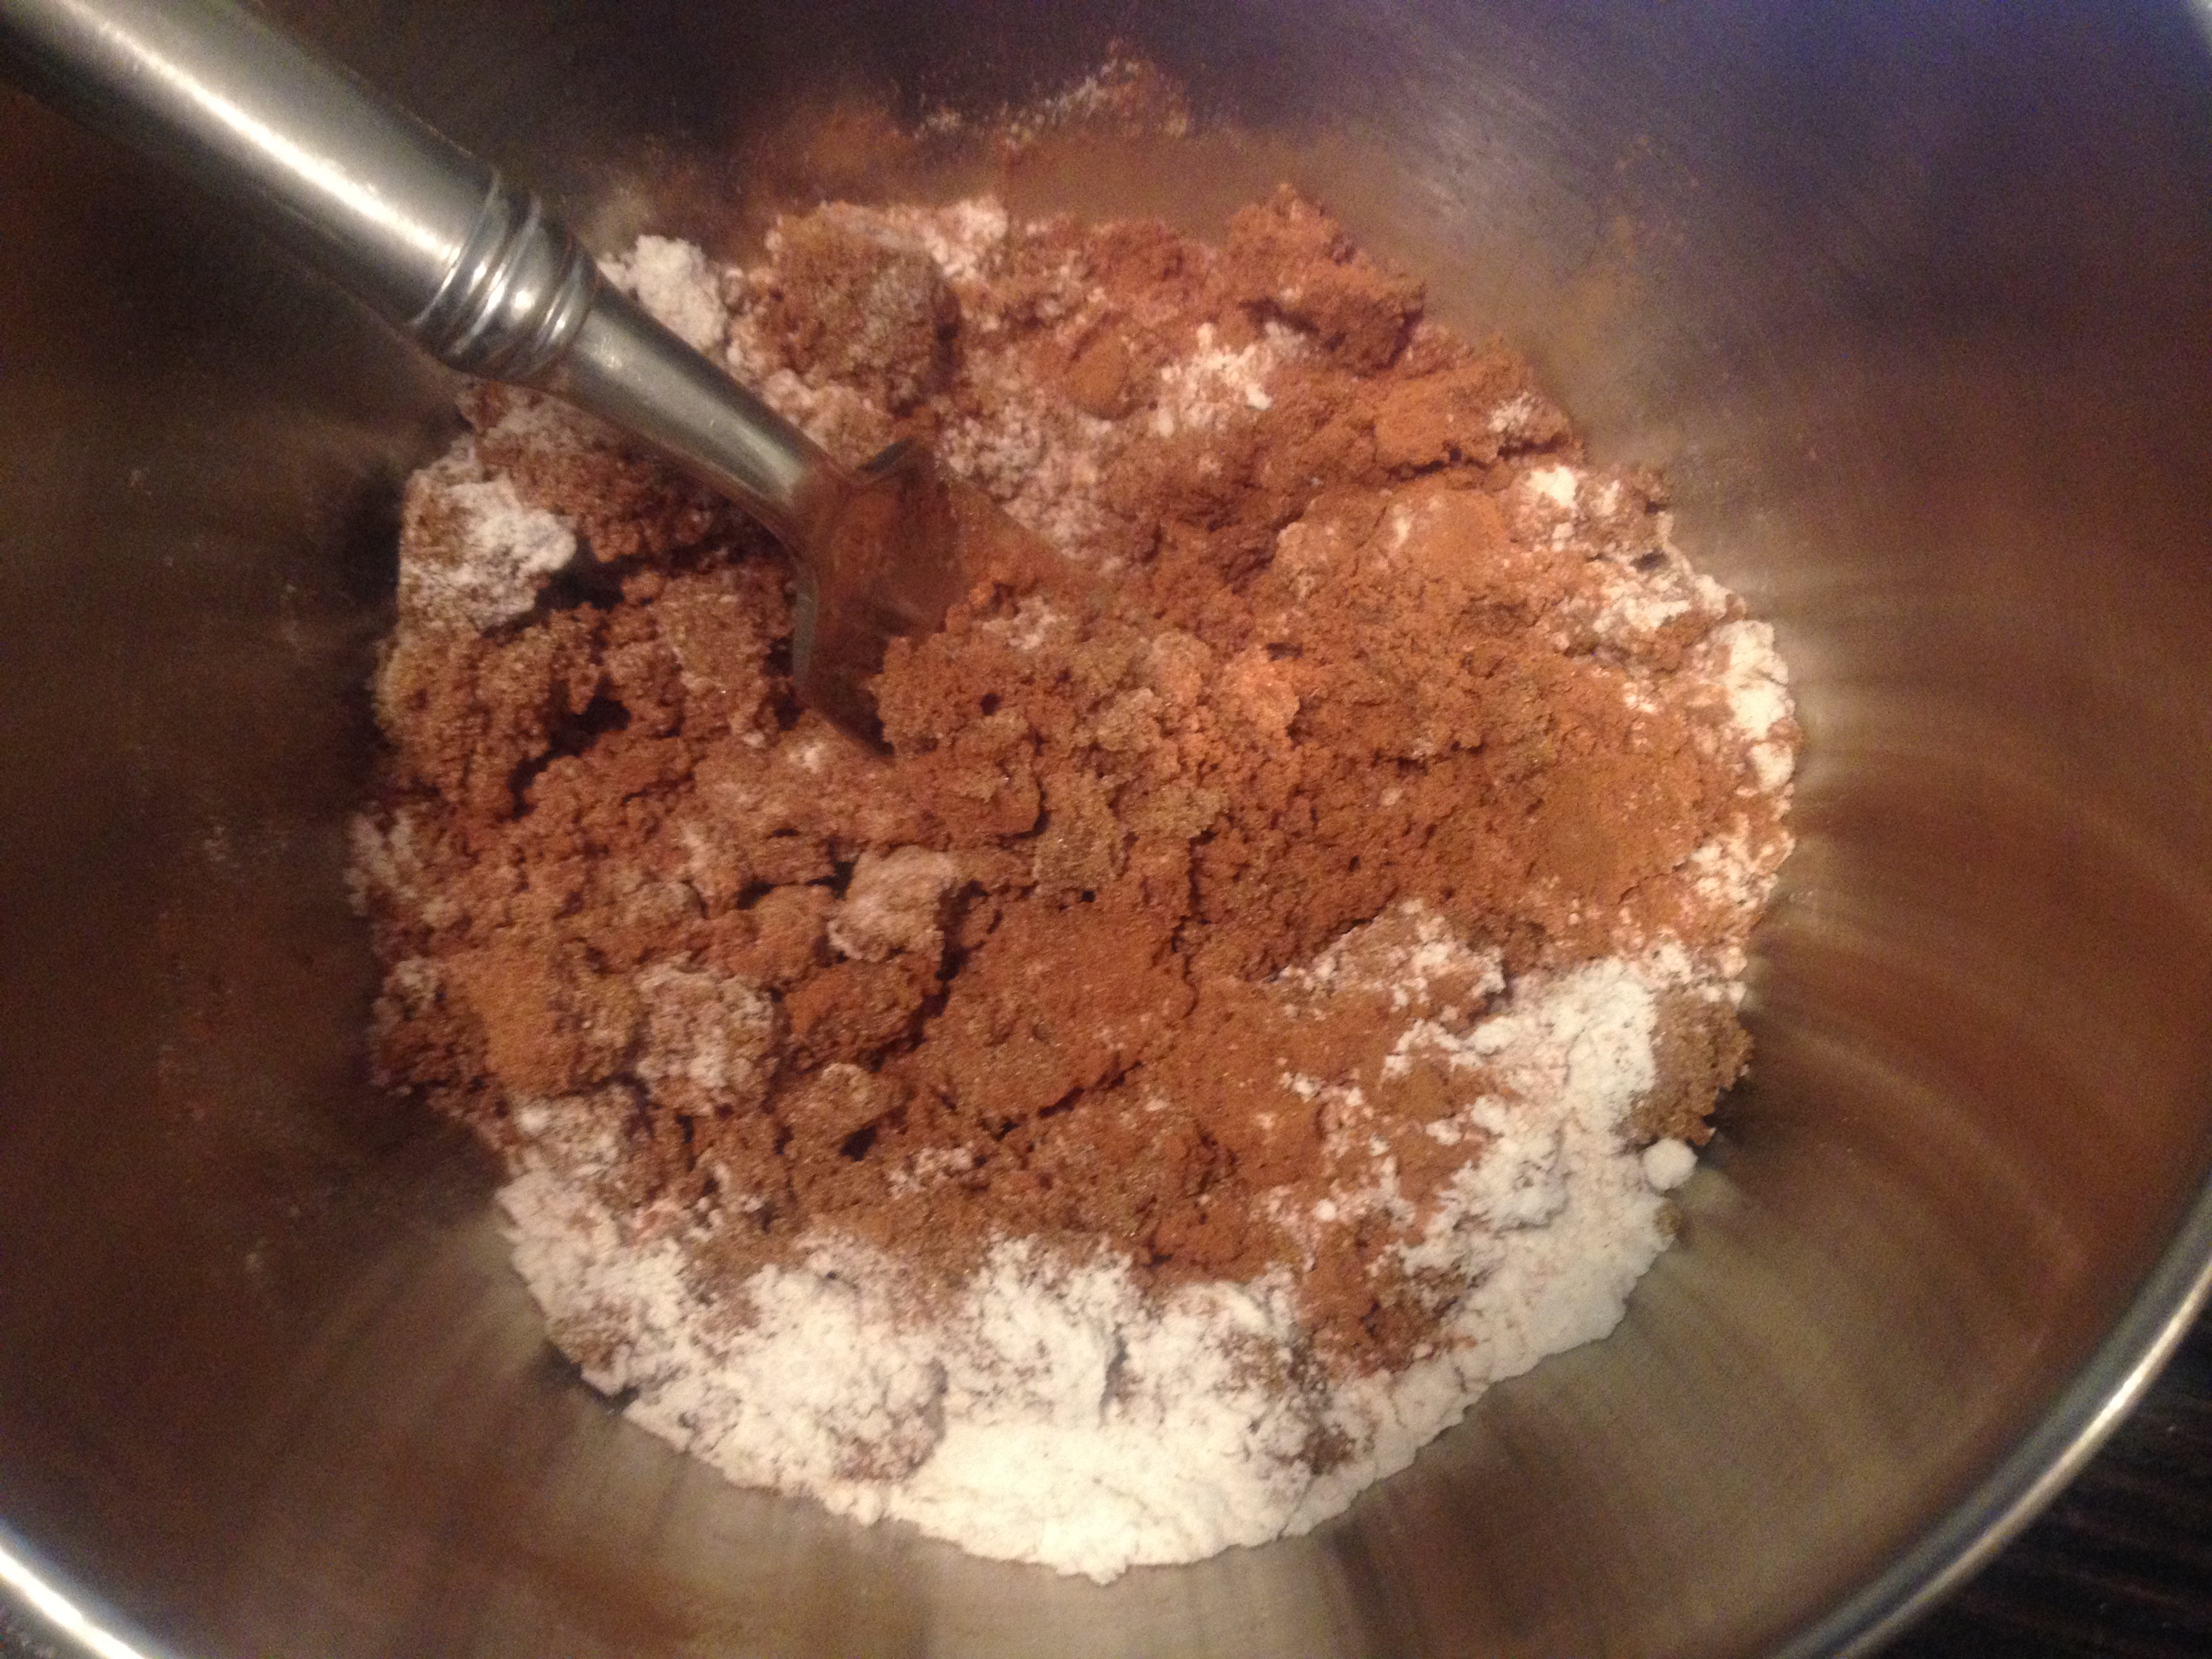 mix up your brown sugar, cinnamon and flour for your filling